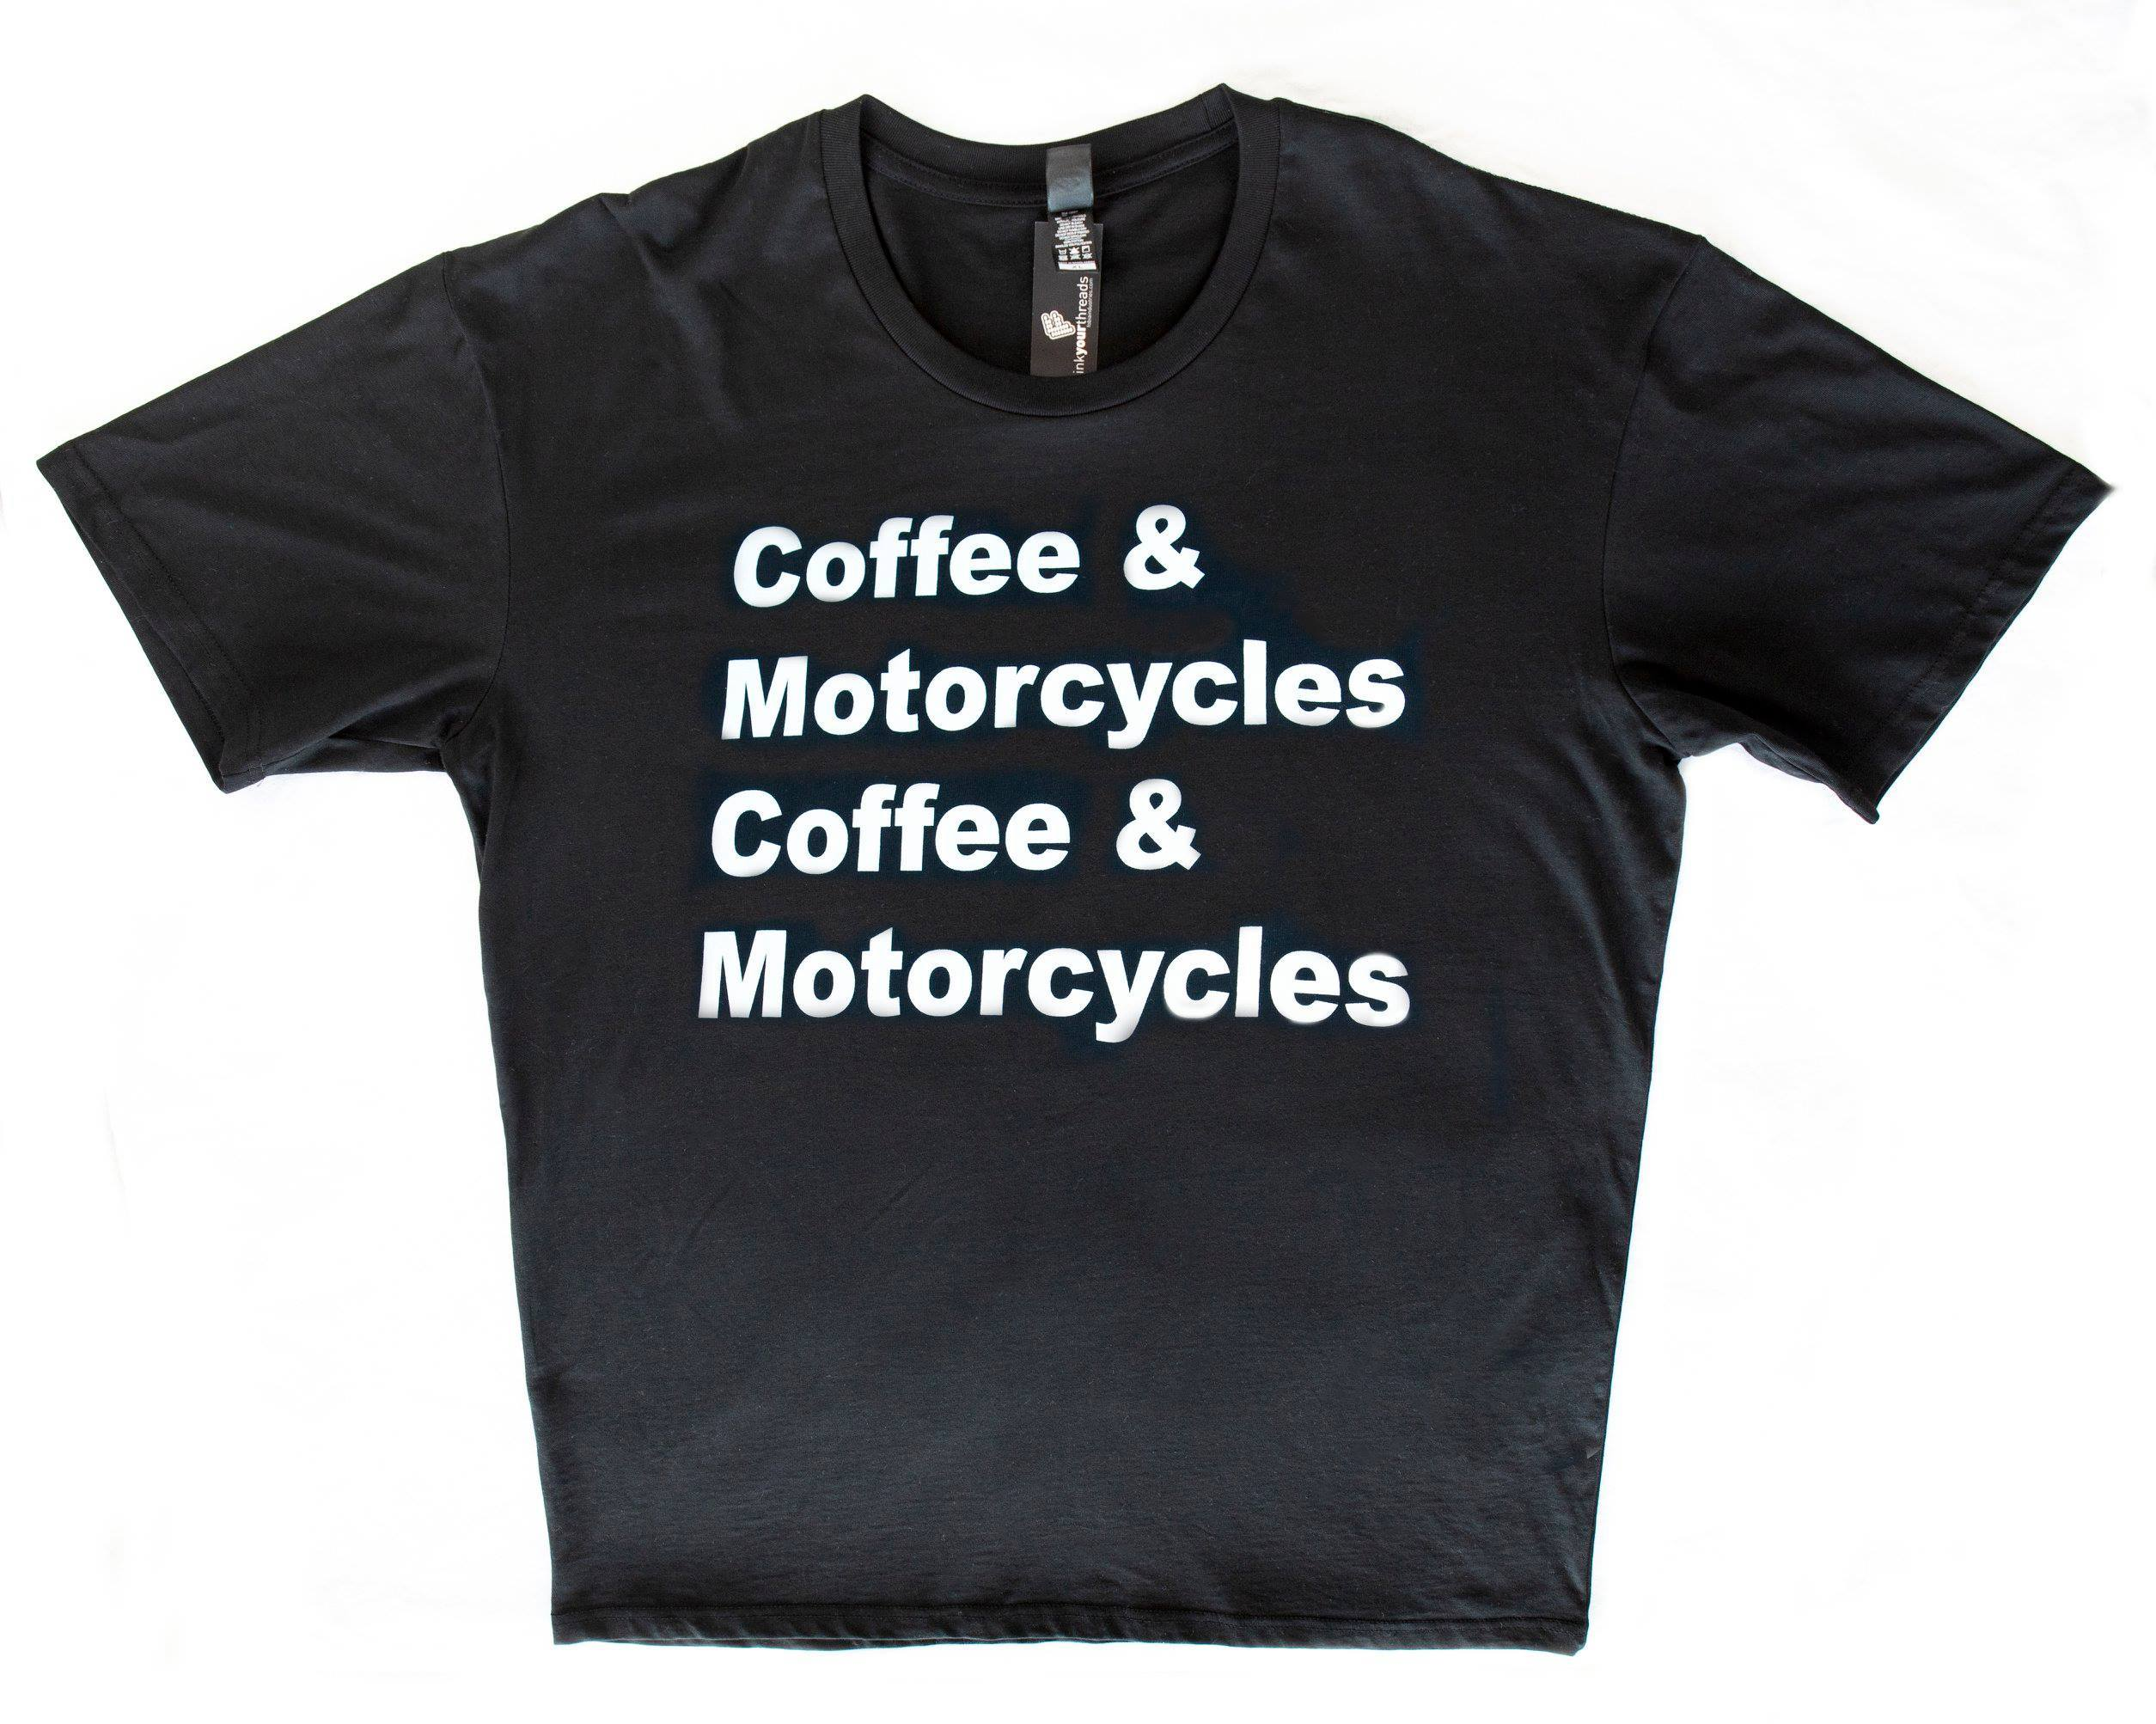 Coffee & Motorcycles 100% Cotton Tee 00001